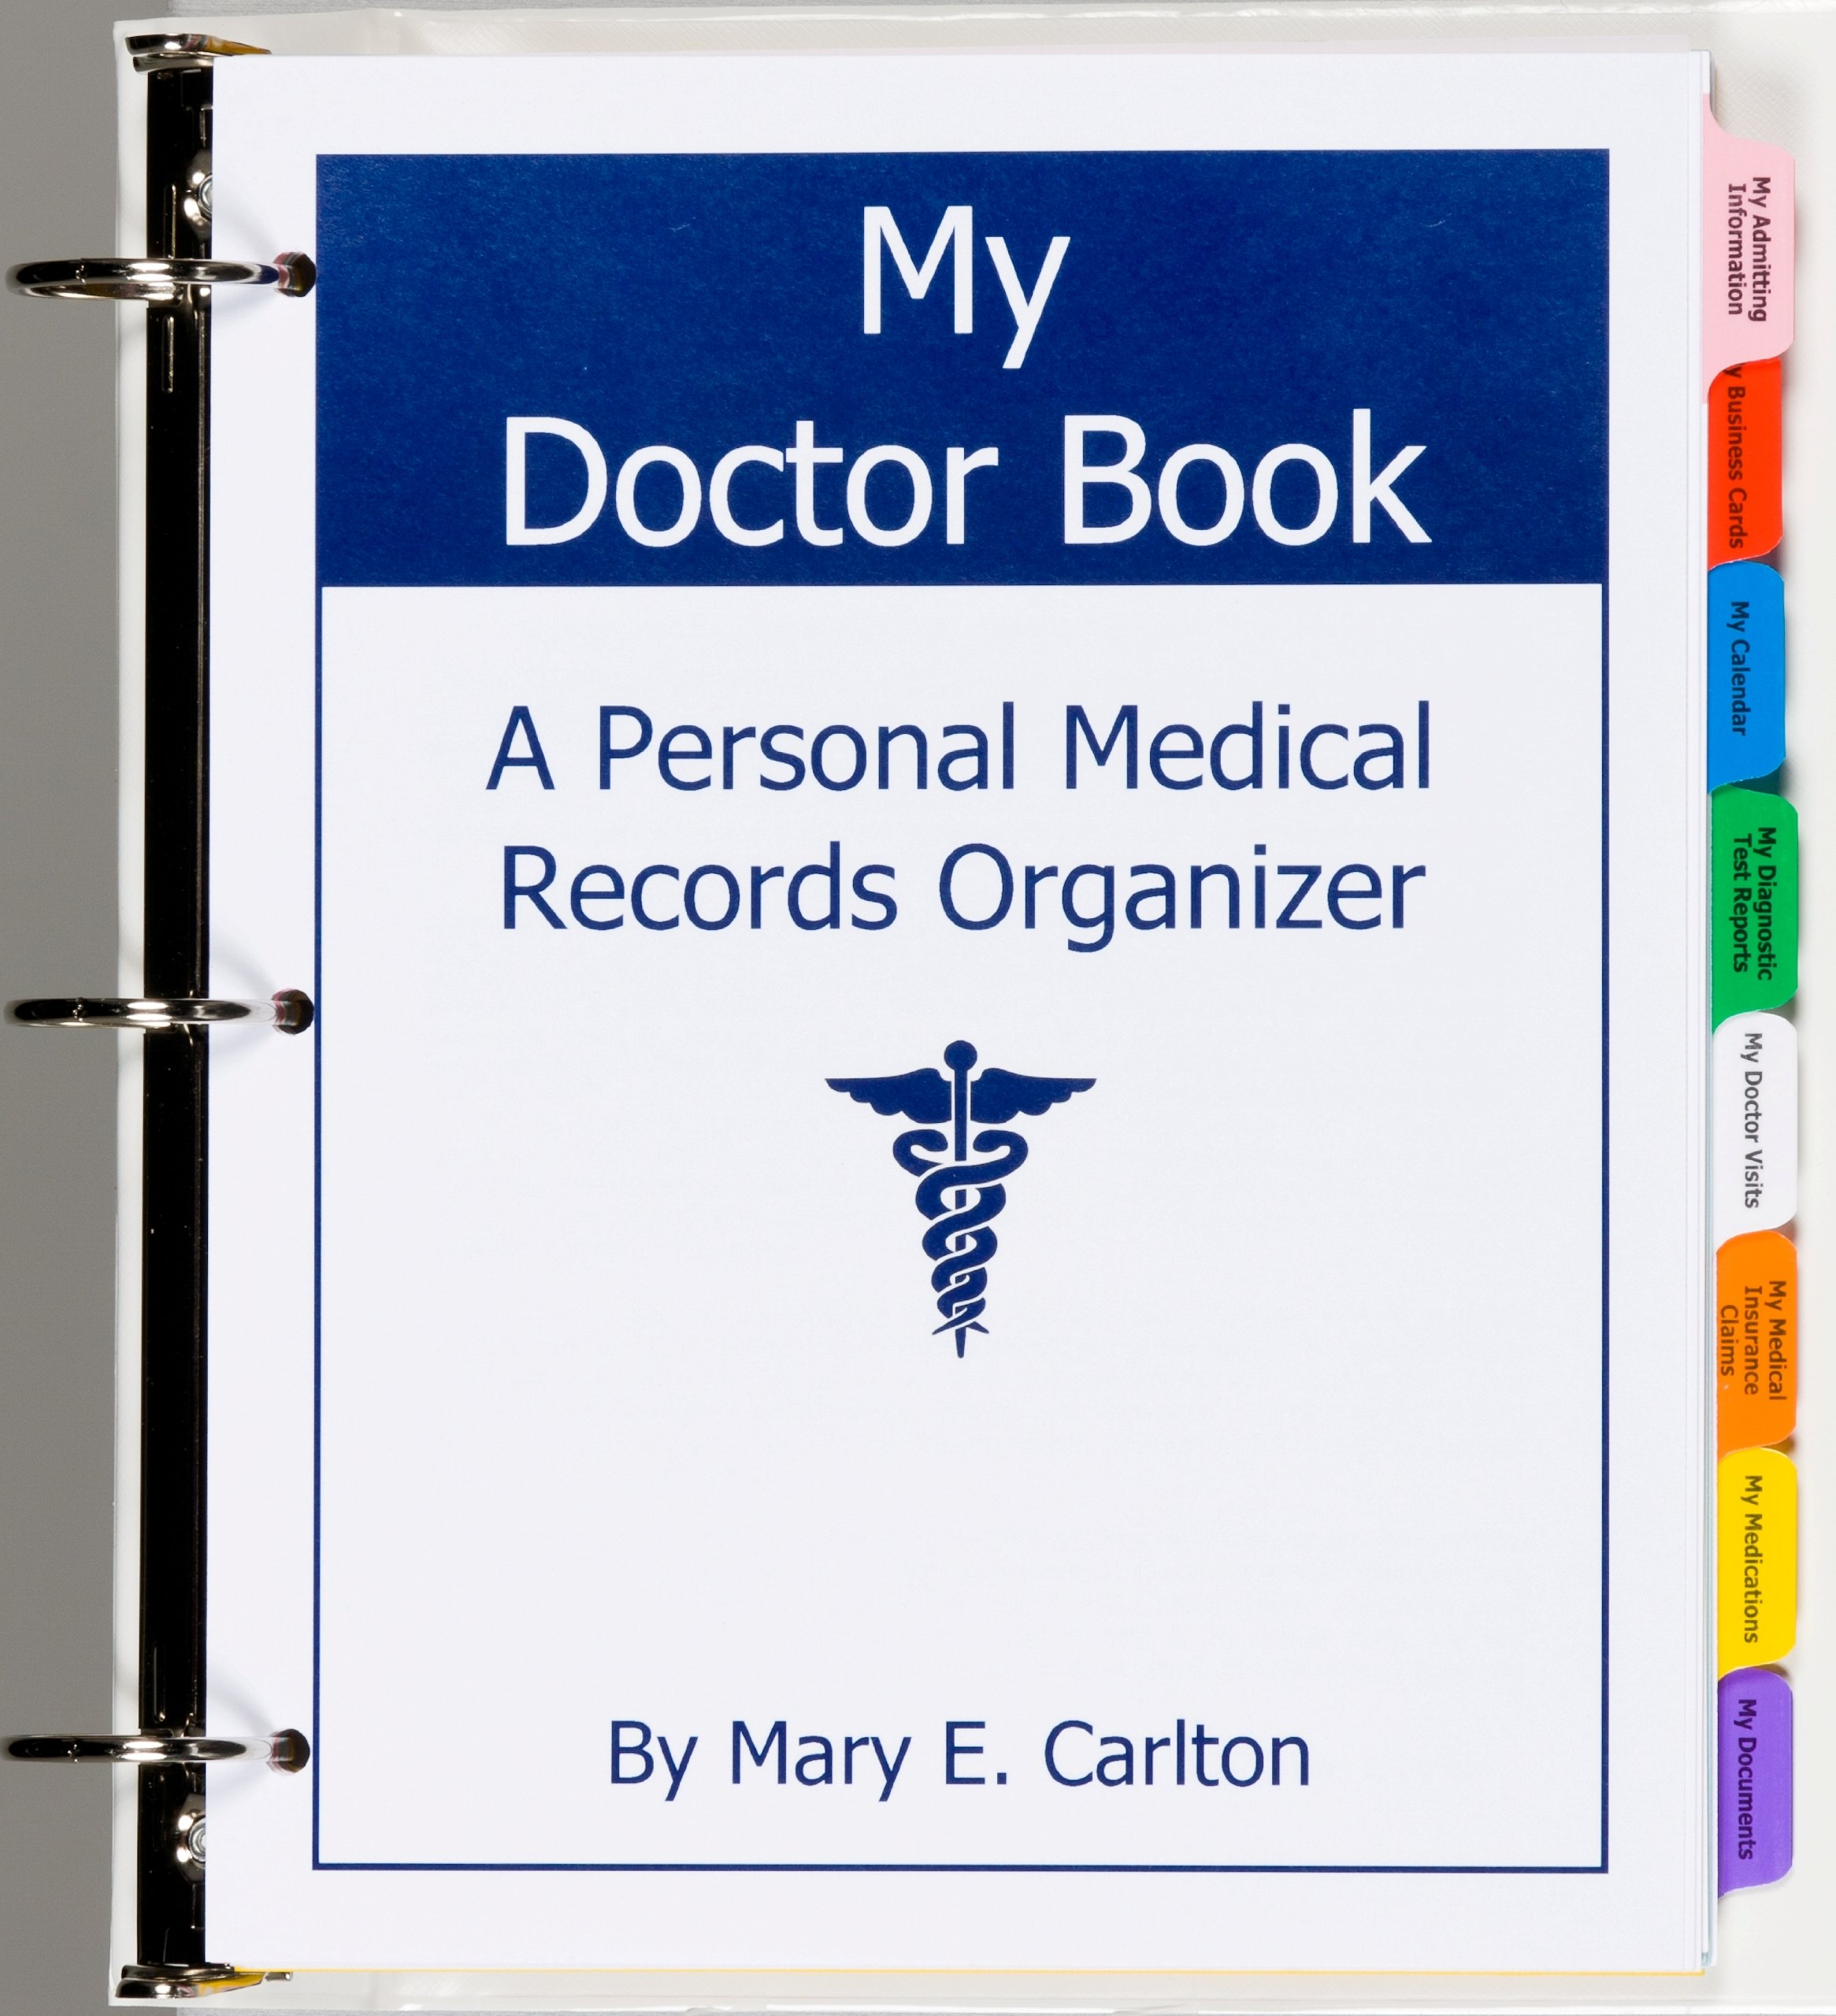 my doctor book a personal medical records organizer winner of